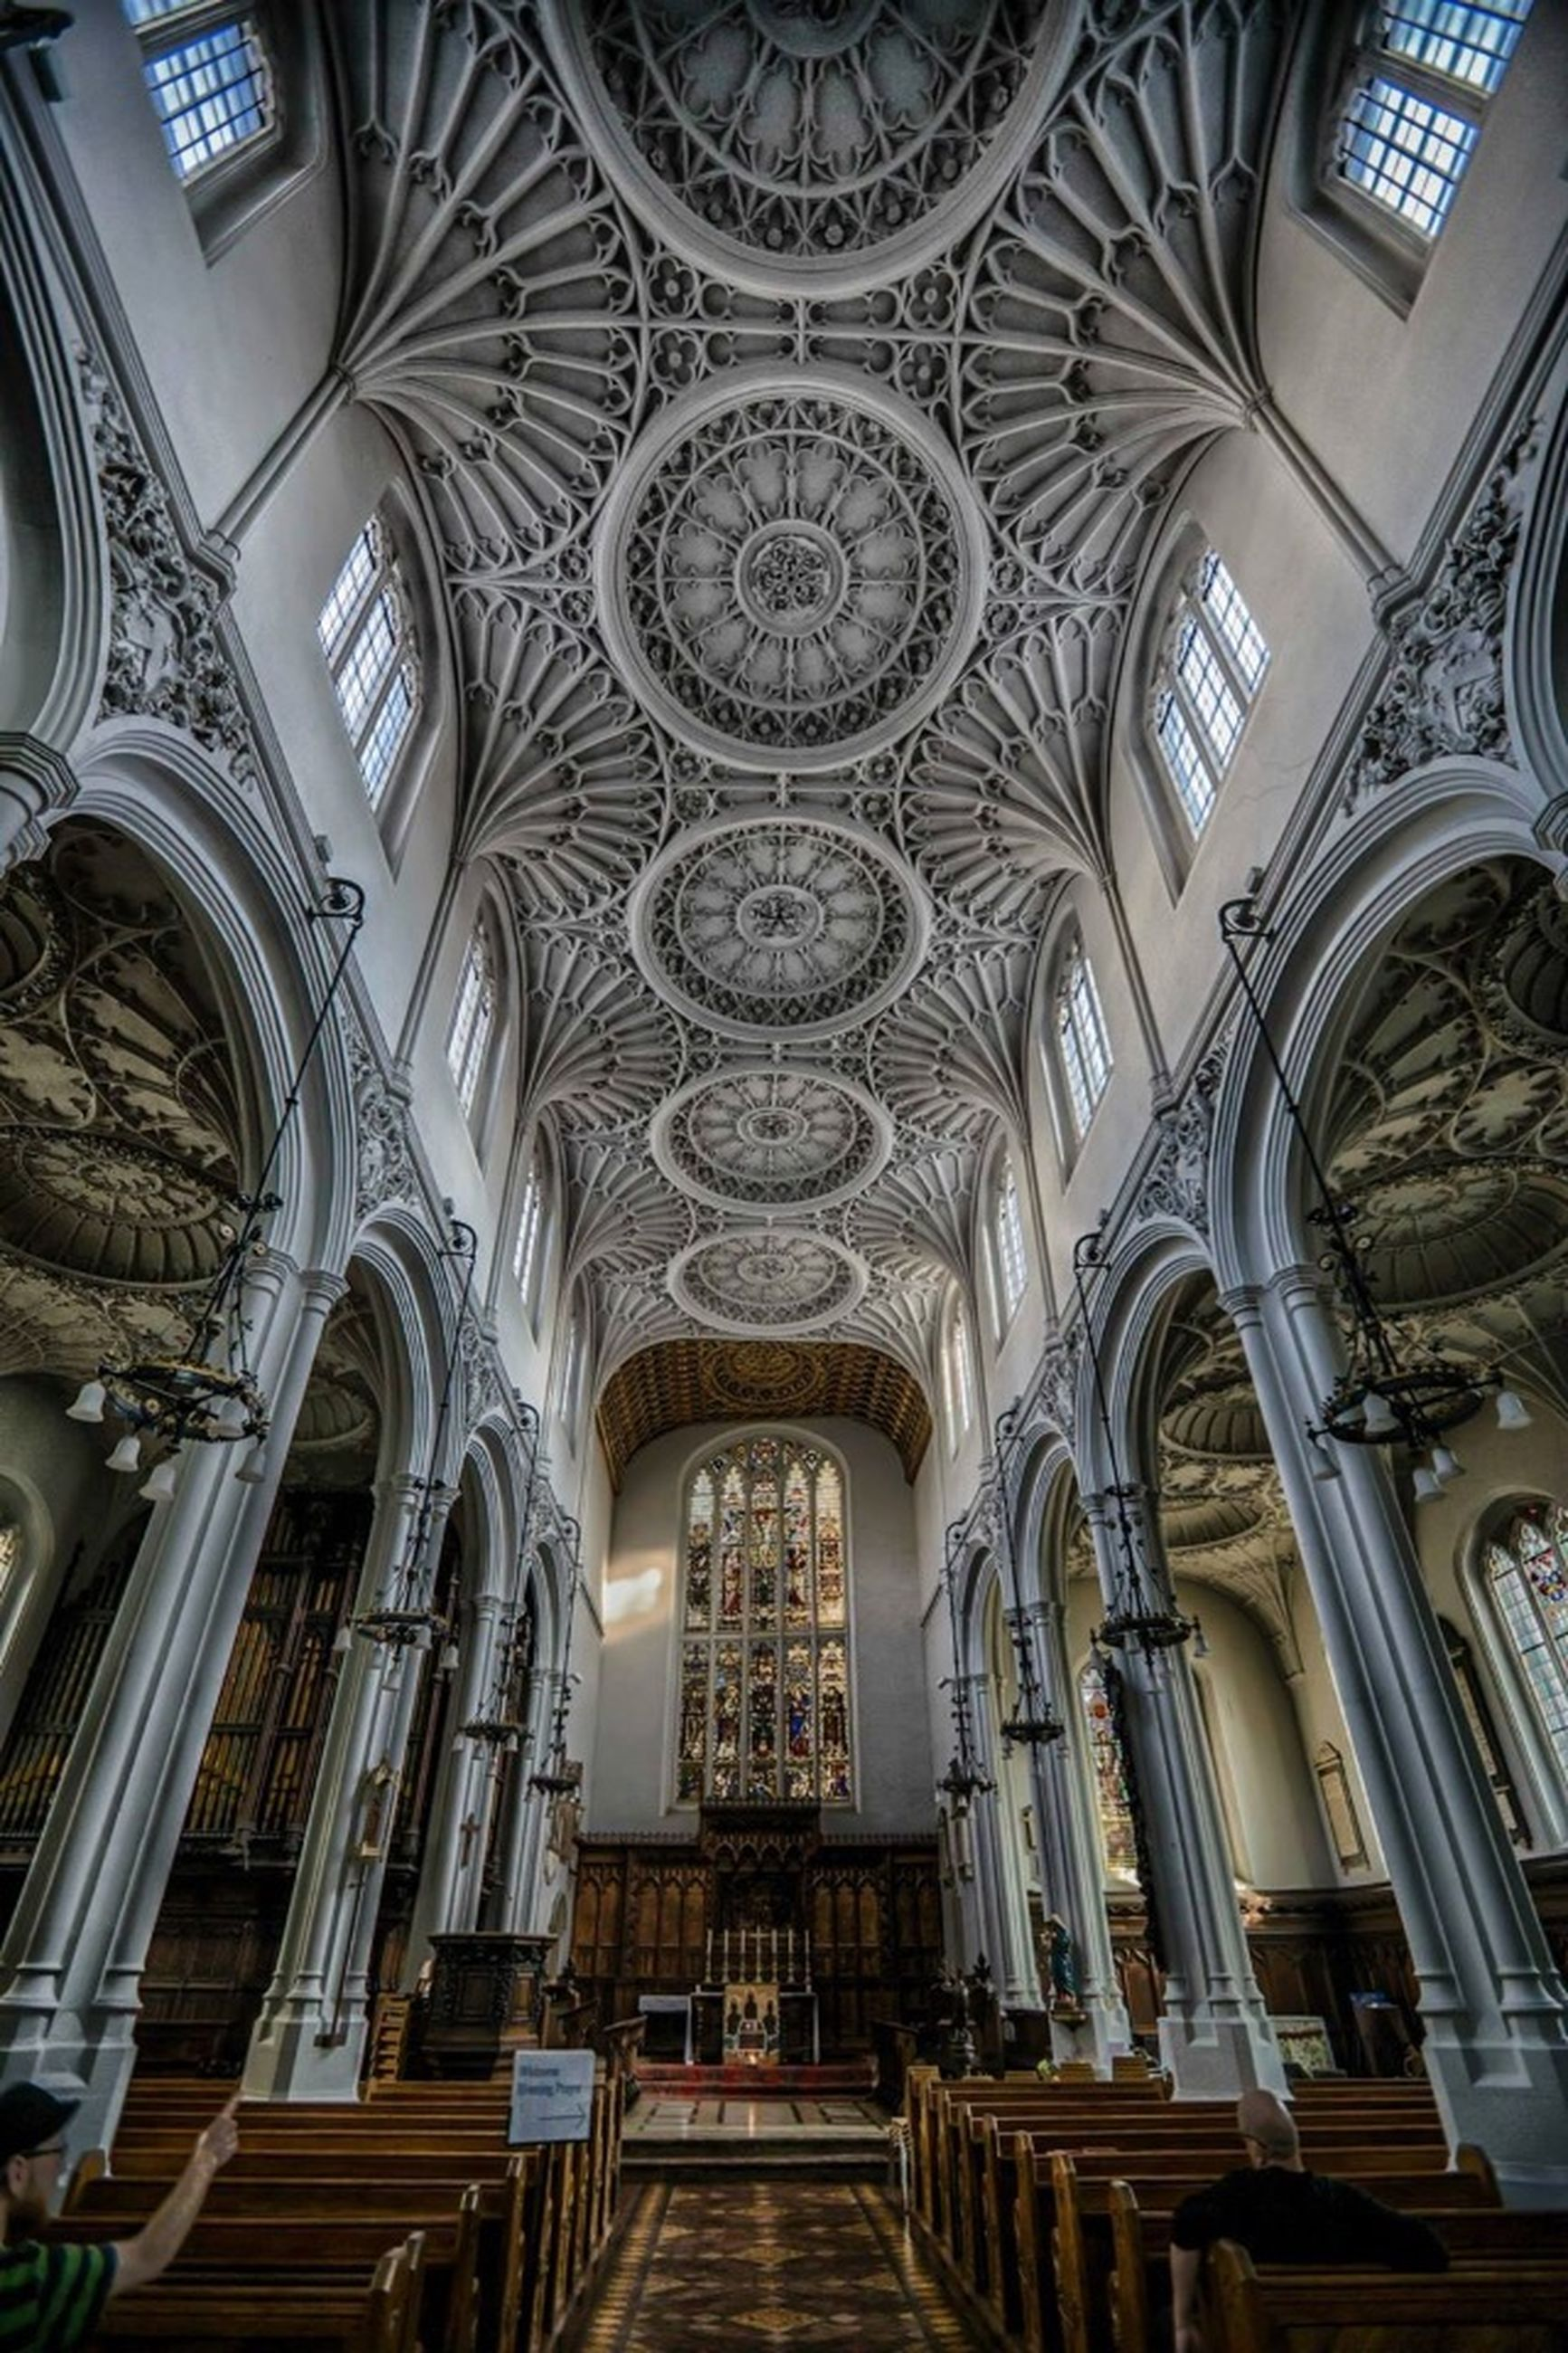 architecture, built structure, indoors, arch, low angle view, ceiling, window, place of worship, religion, church, building exterior, architectural feature, spirituality, ornate, interior, cathedral, design, pattern, building